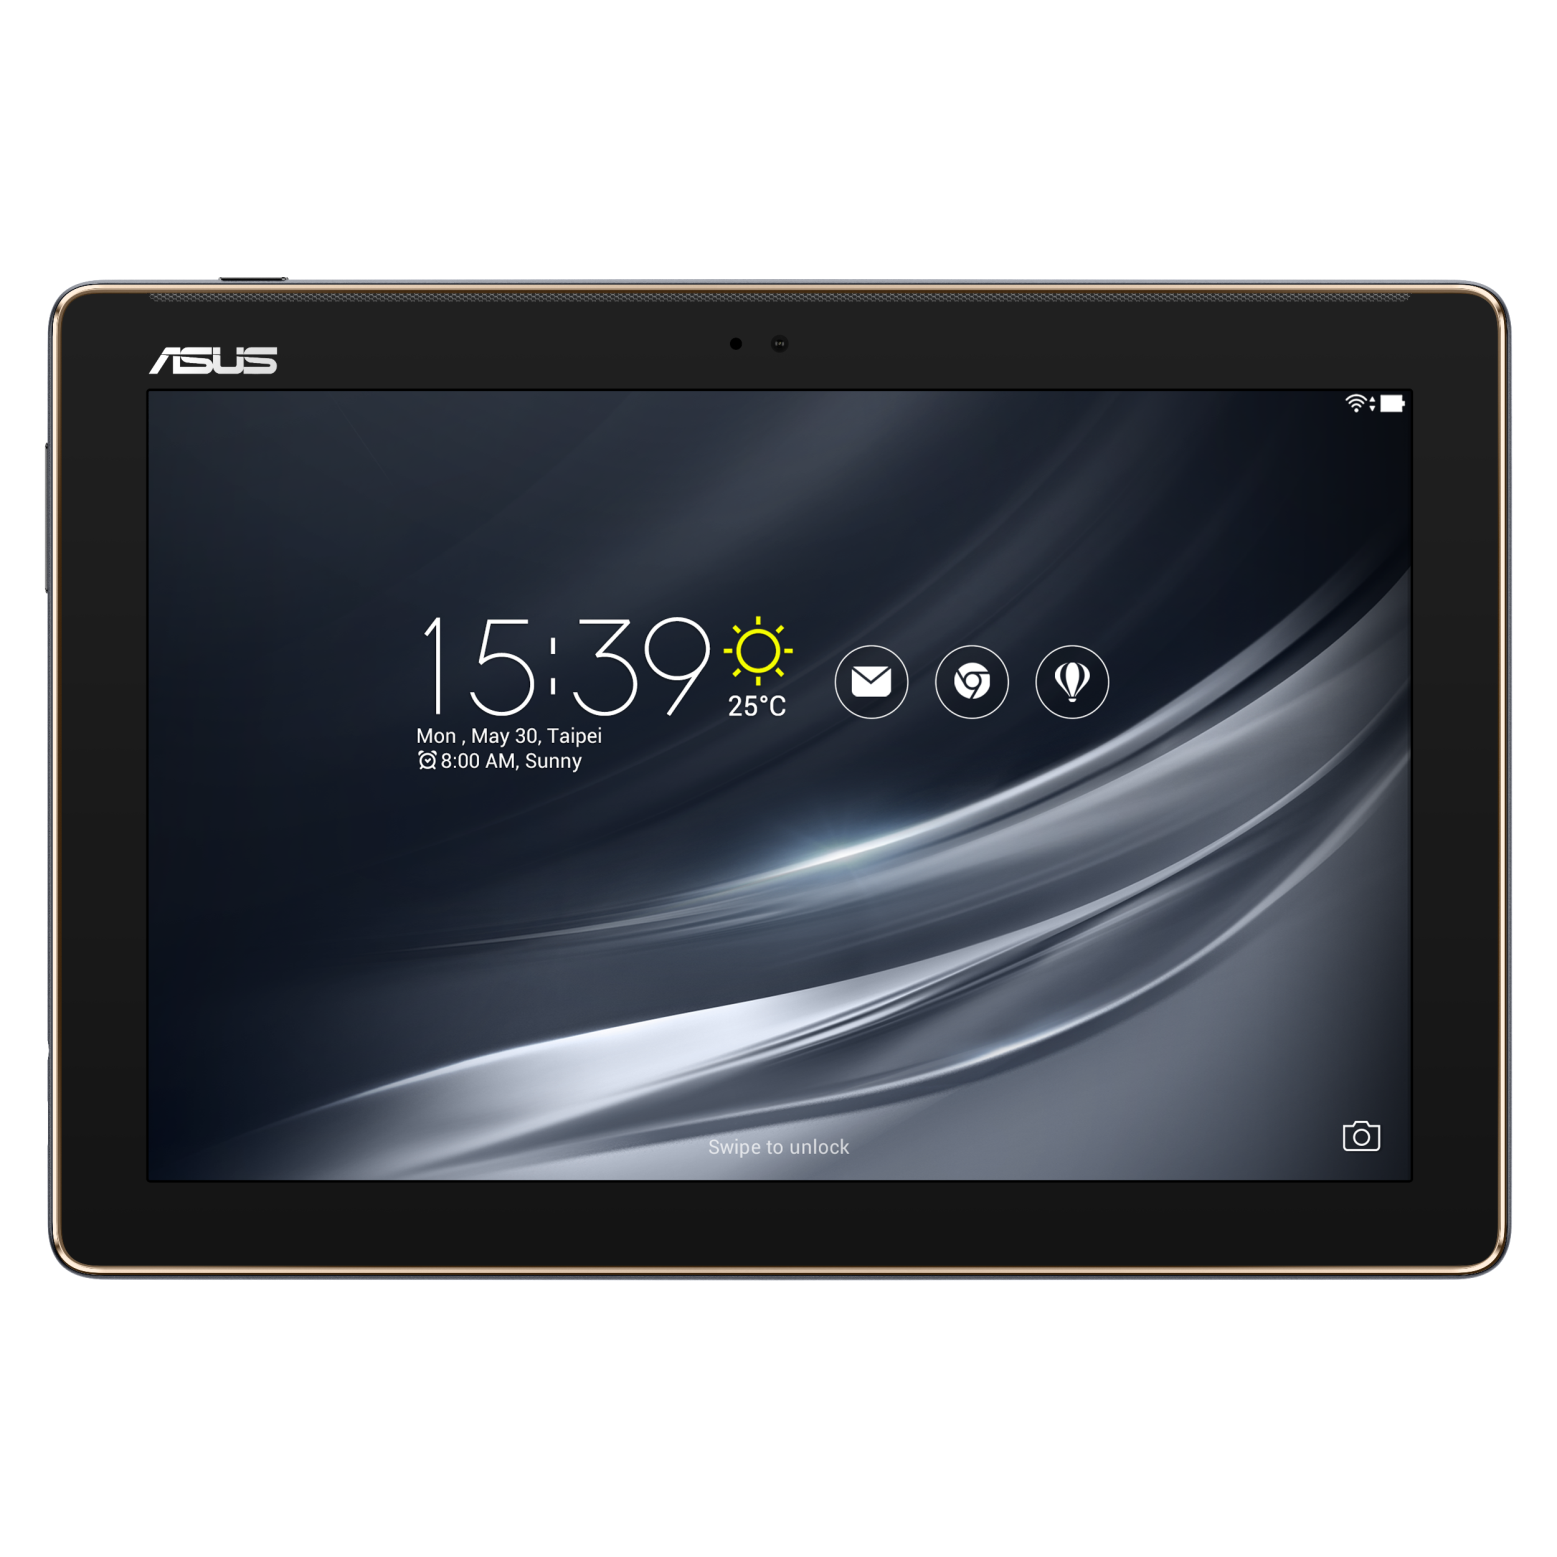 "Asus ZenPad 10 MTK MT8735W/3GB/32GB/LTE/10,1""/1280x800/IPS/Android N/grey"